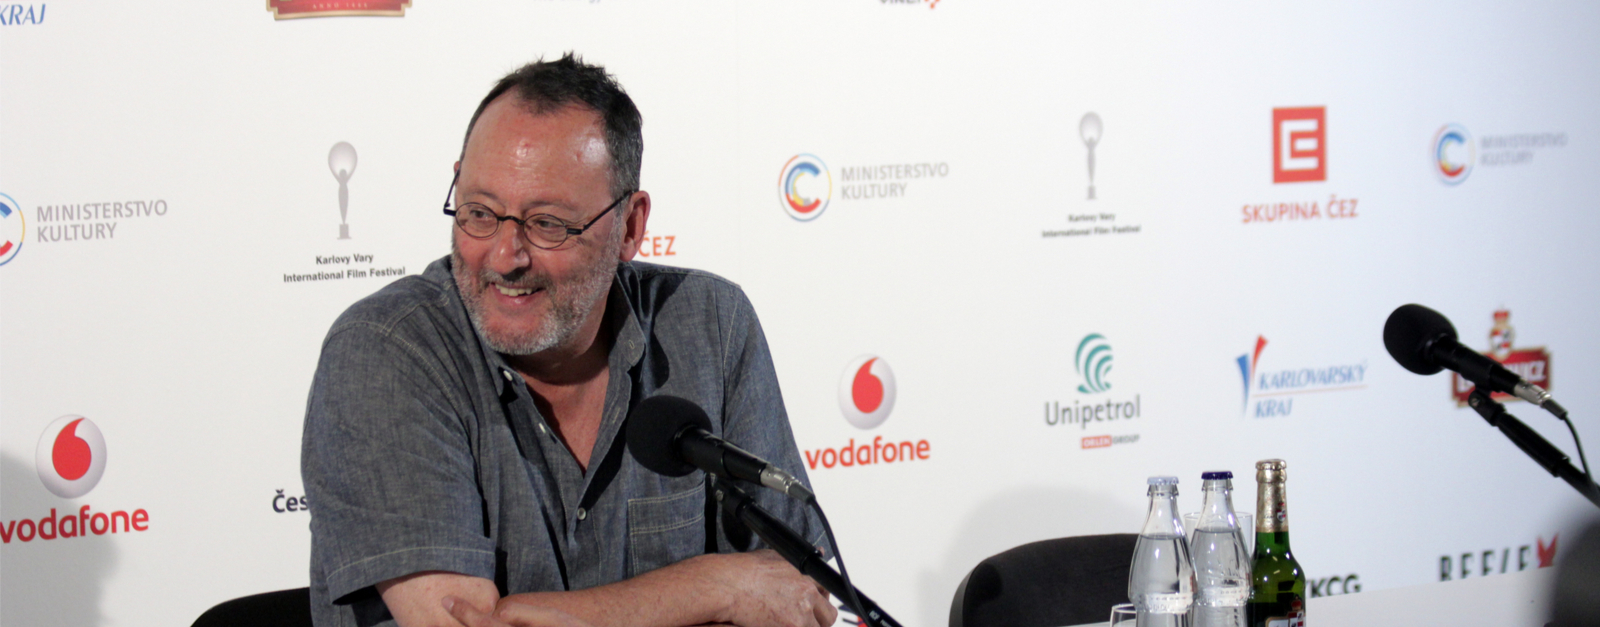 Jean Reno filmed a greeting to Prague hospital